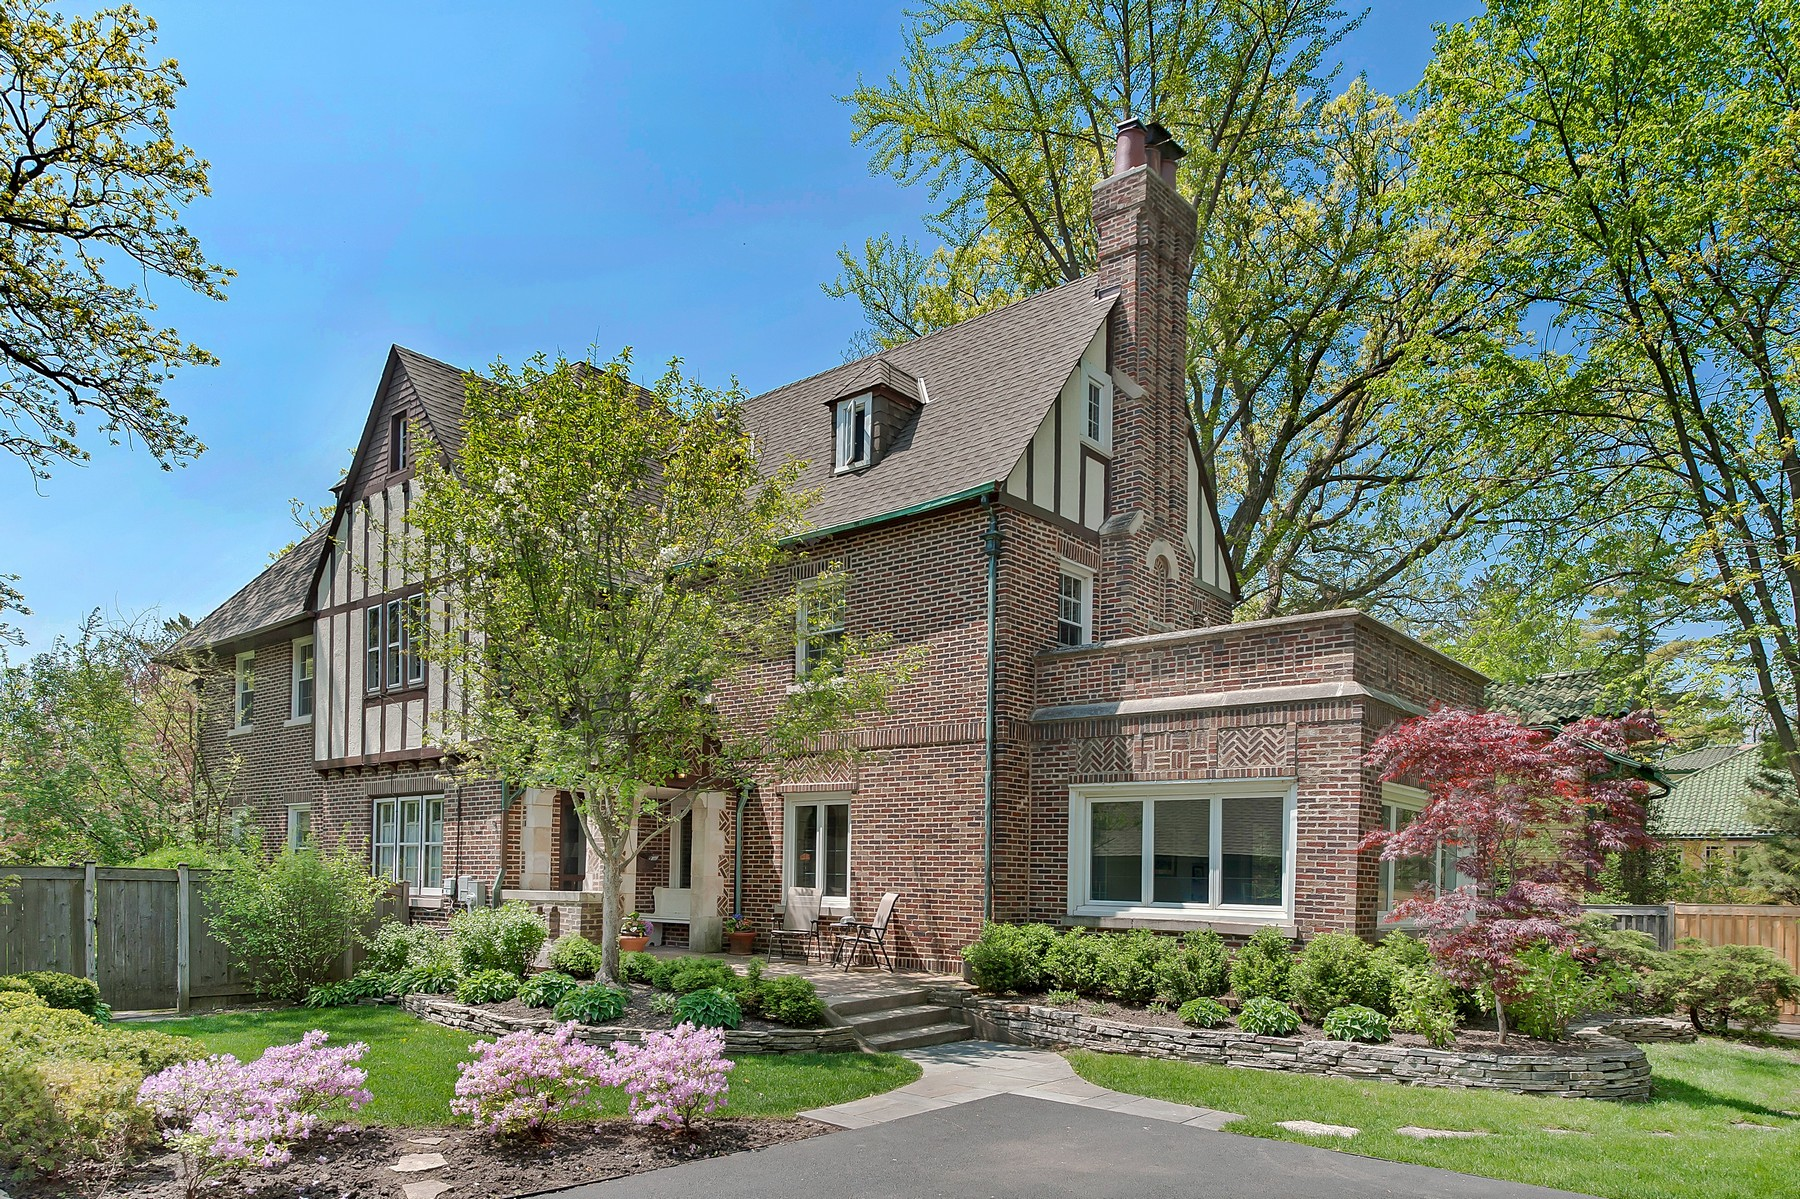 Villa per Vendita alle ore Gracious Brick Retreat 1206 Tower Road Winnetka, Illinois, 60093 Stati Uniti